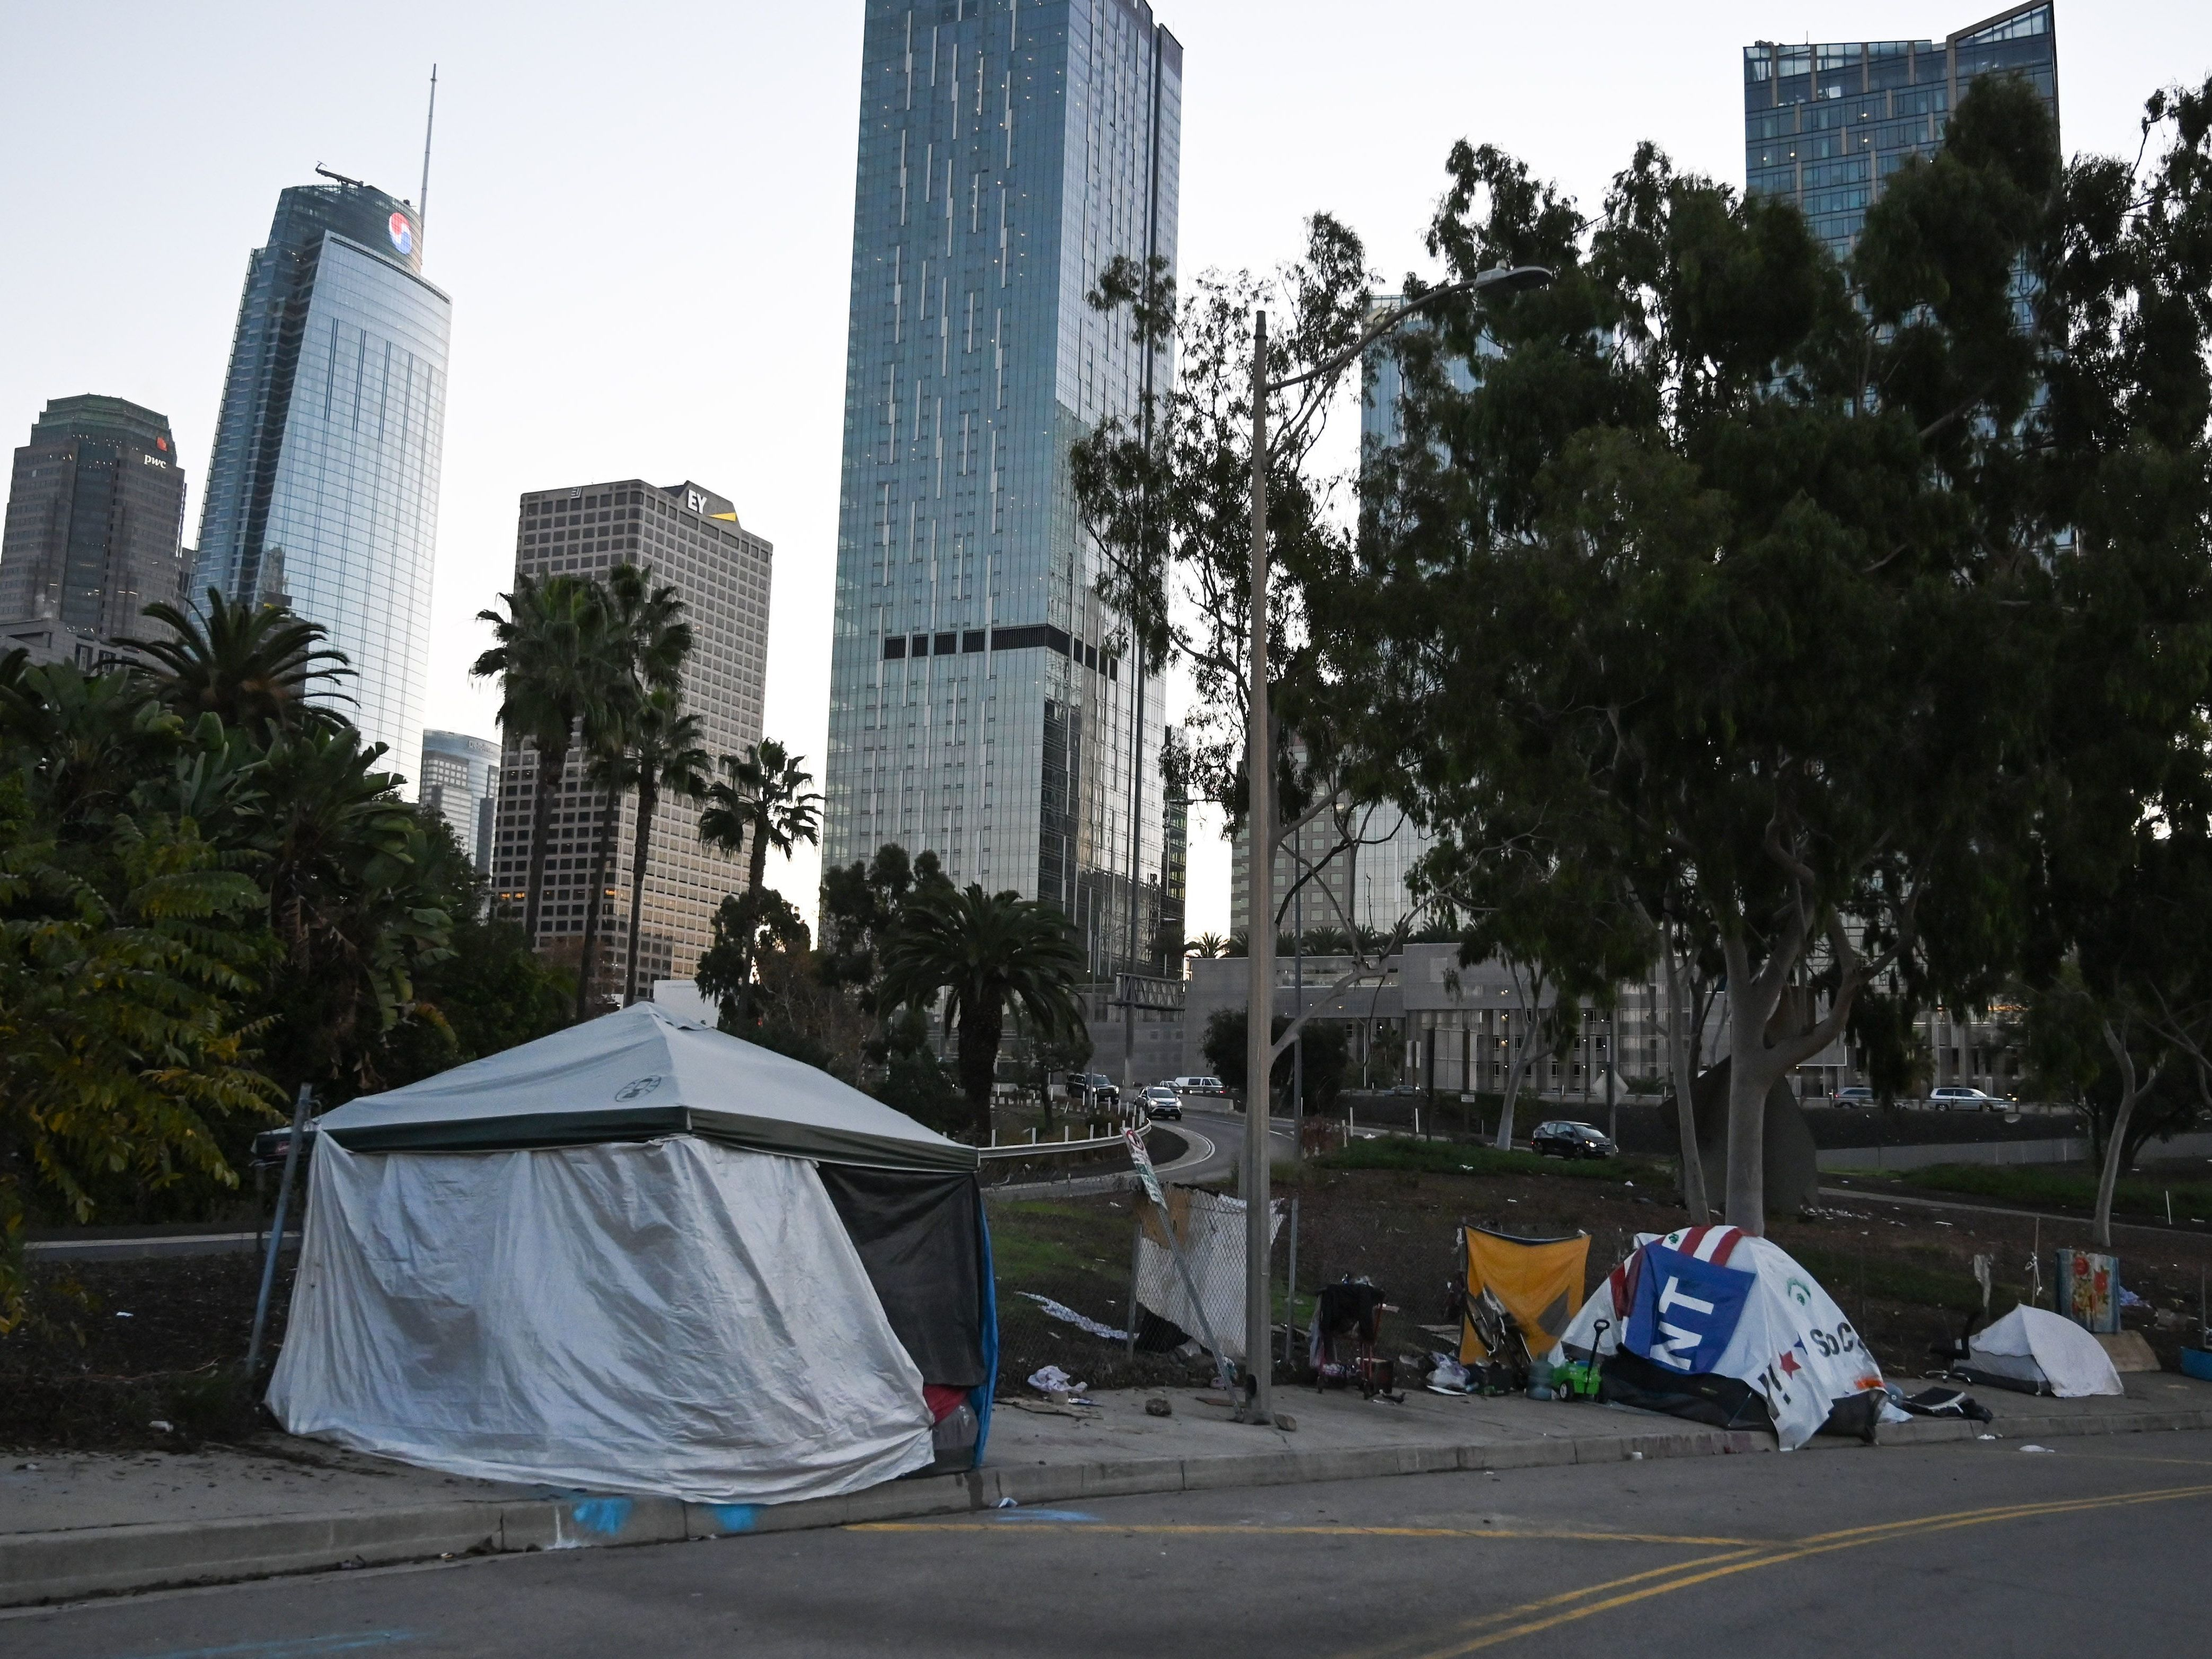 Weekly Wrap: How Cities Are Responding To Homelessness, Plus All About Flu Season